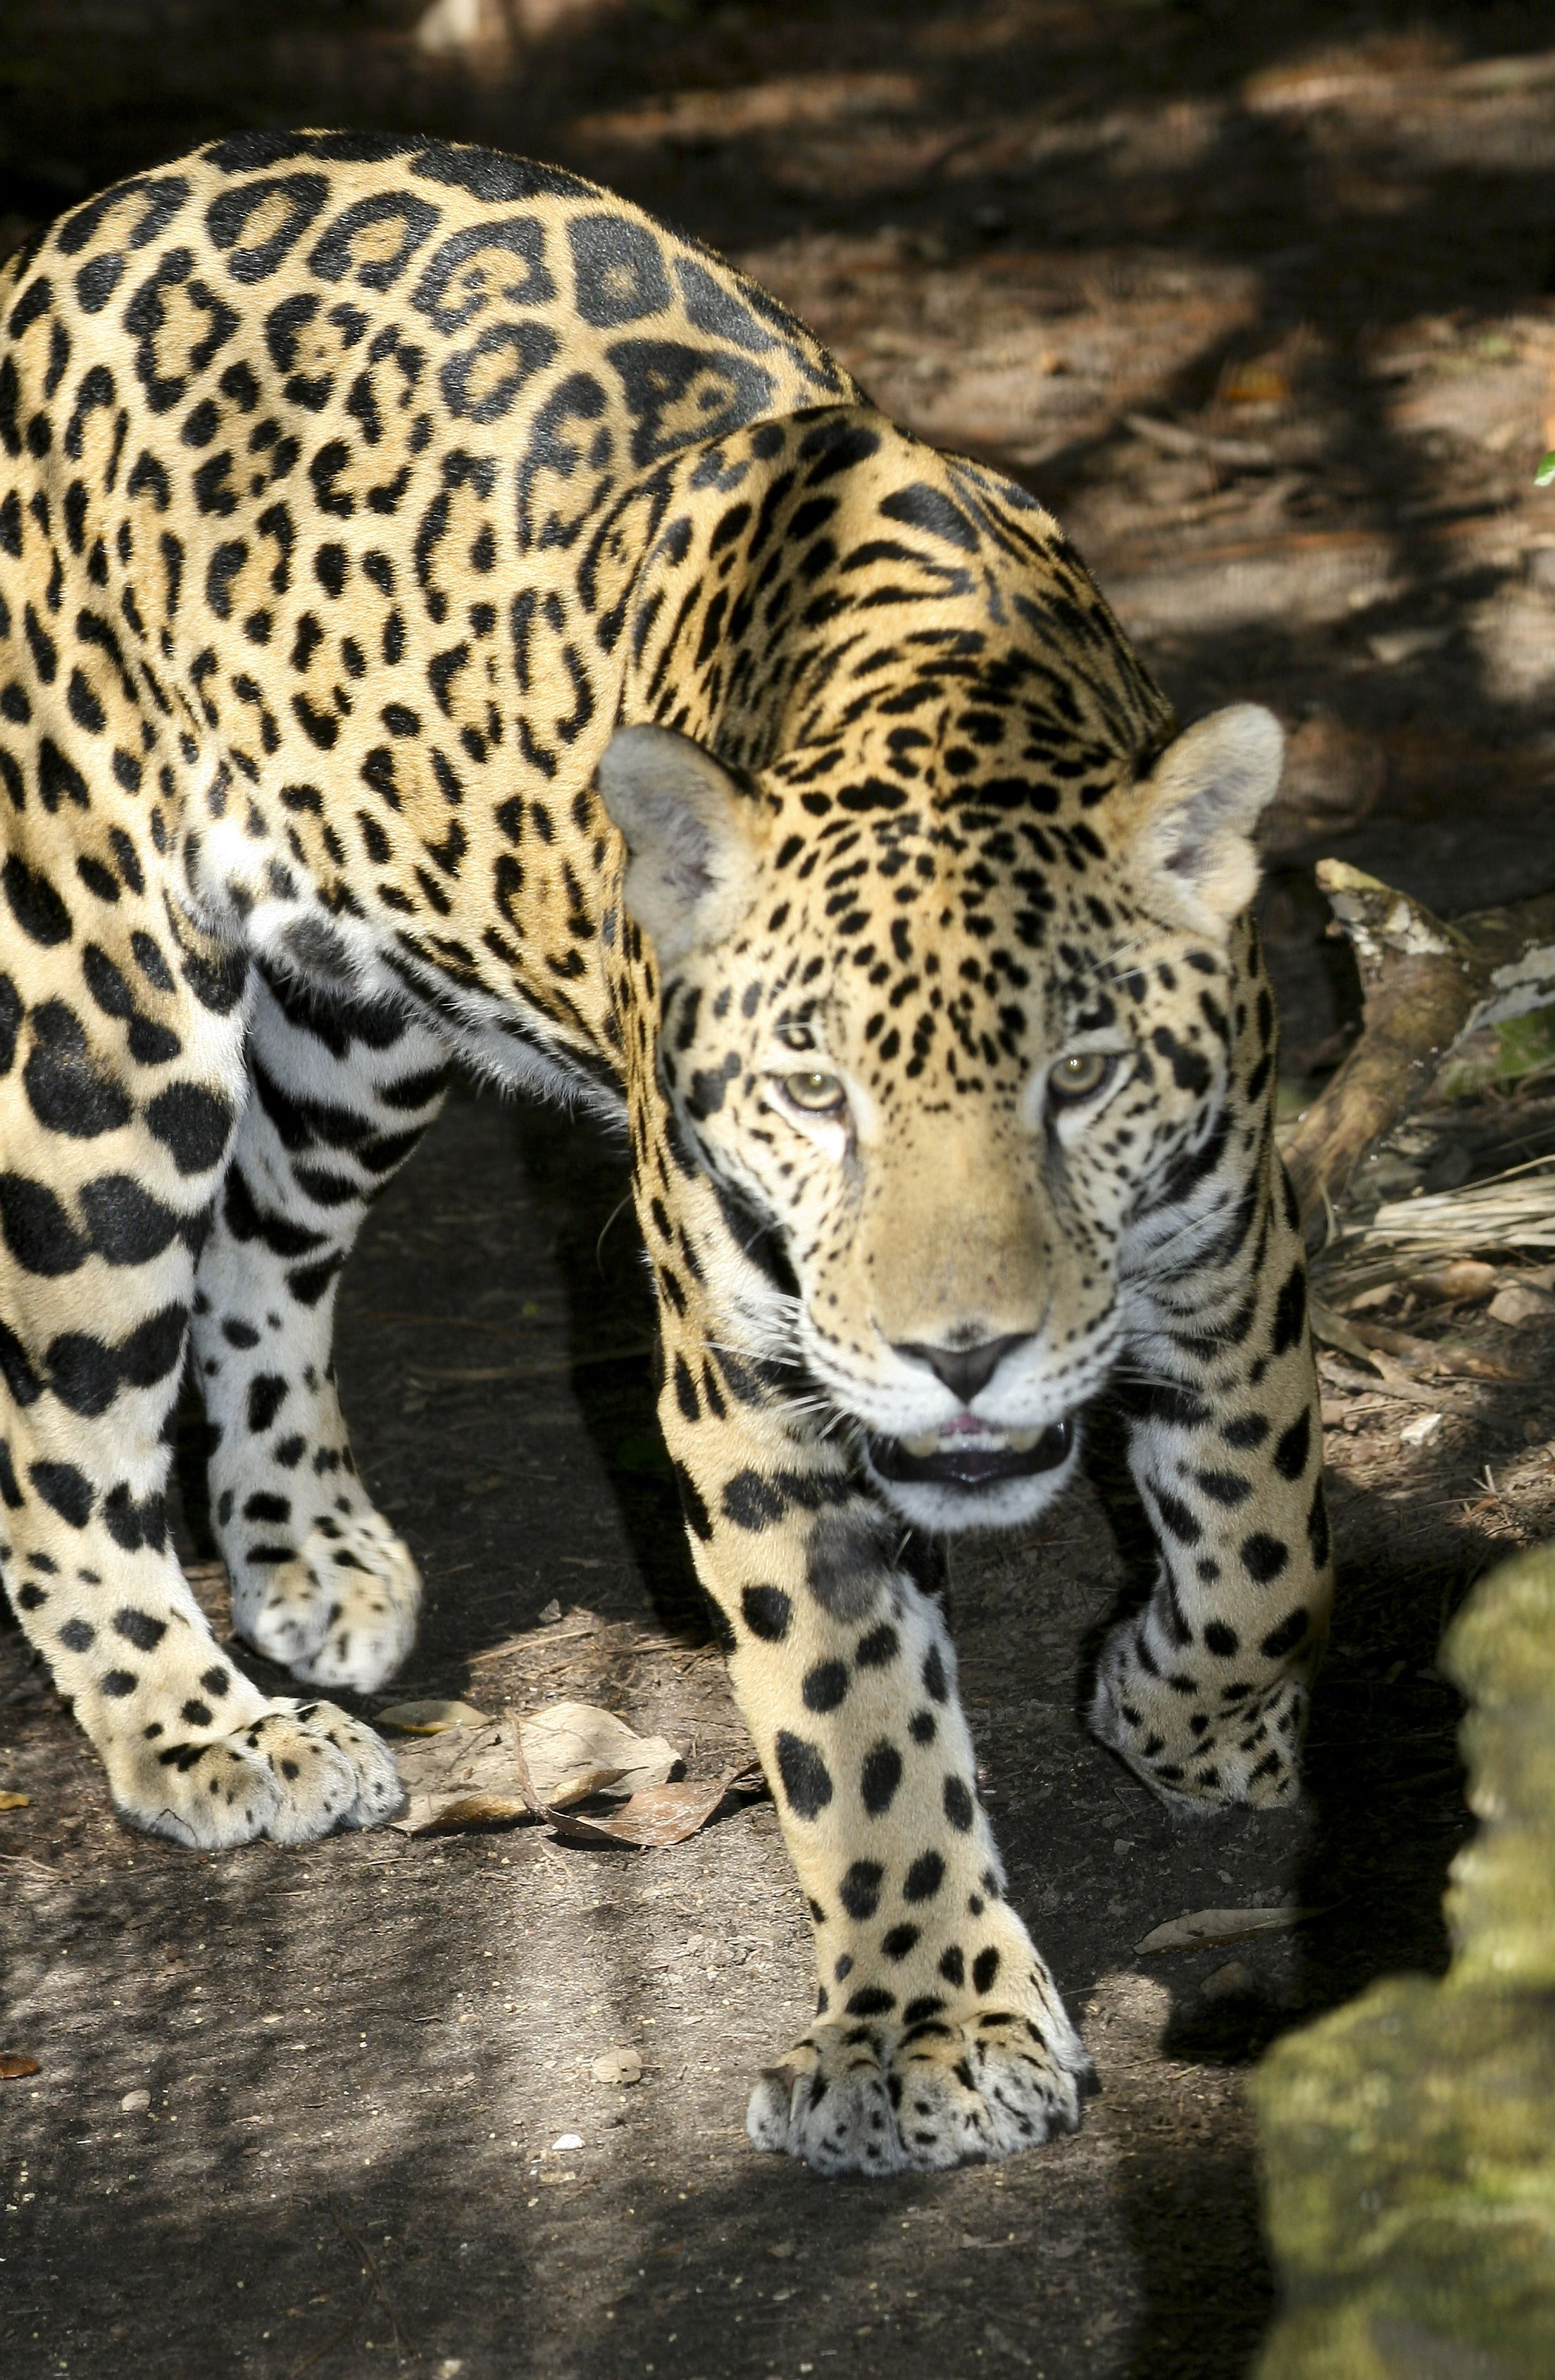 The Jaguar, largest cat in North America.  Taken in Belize (there was only thin chicken wire in front of me!)